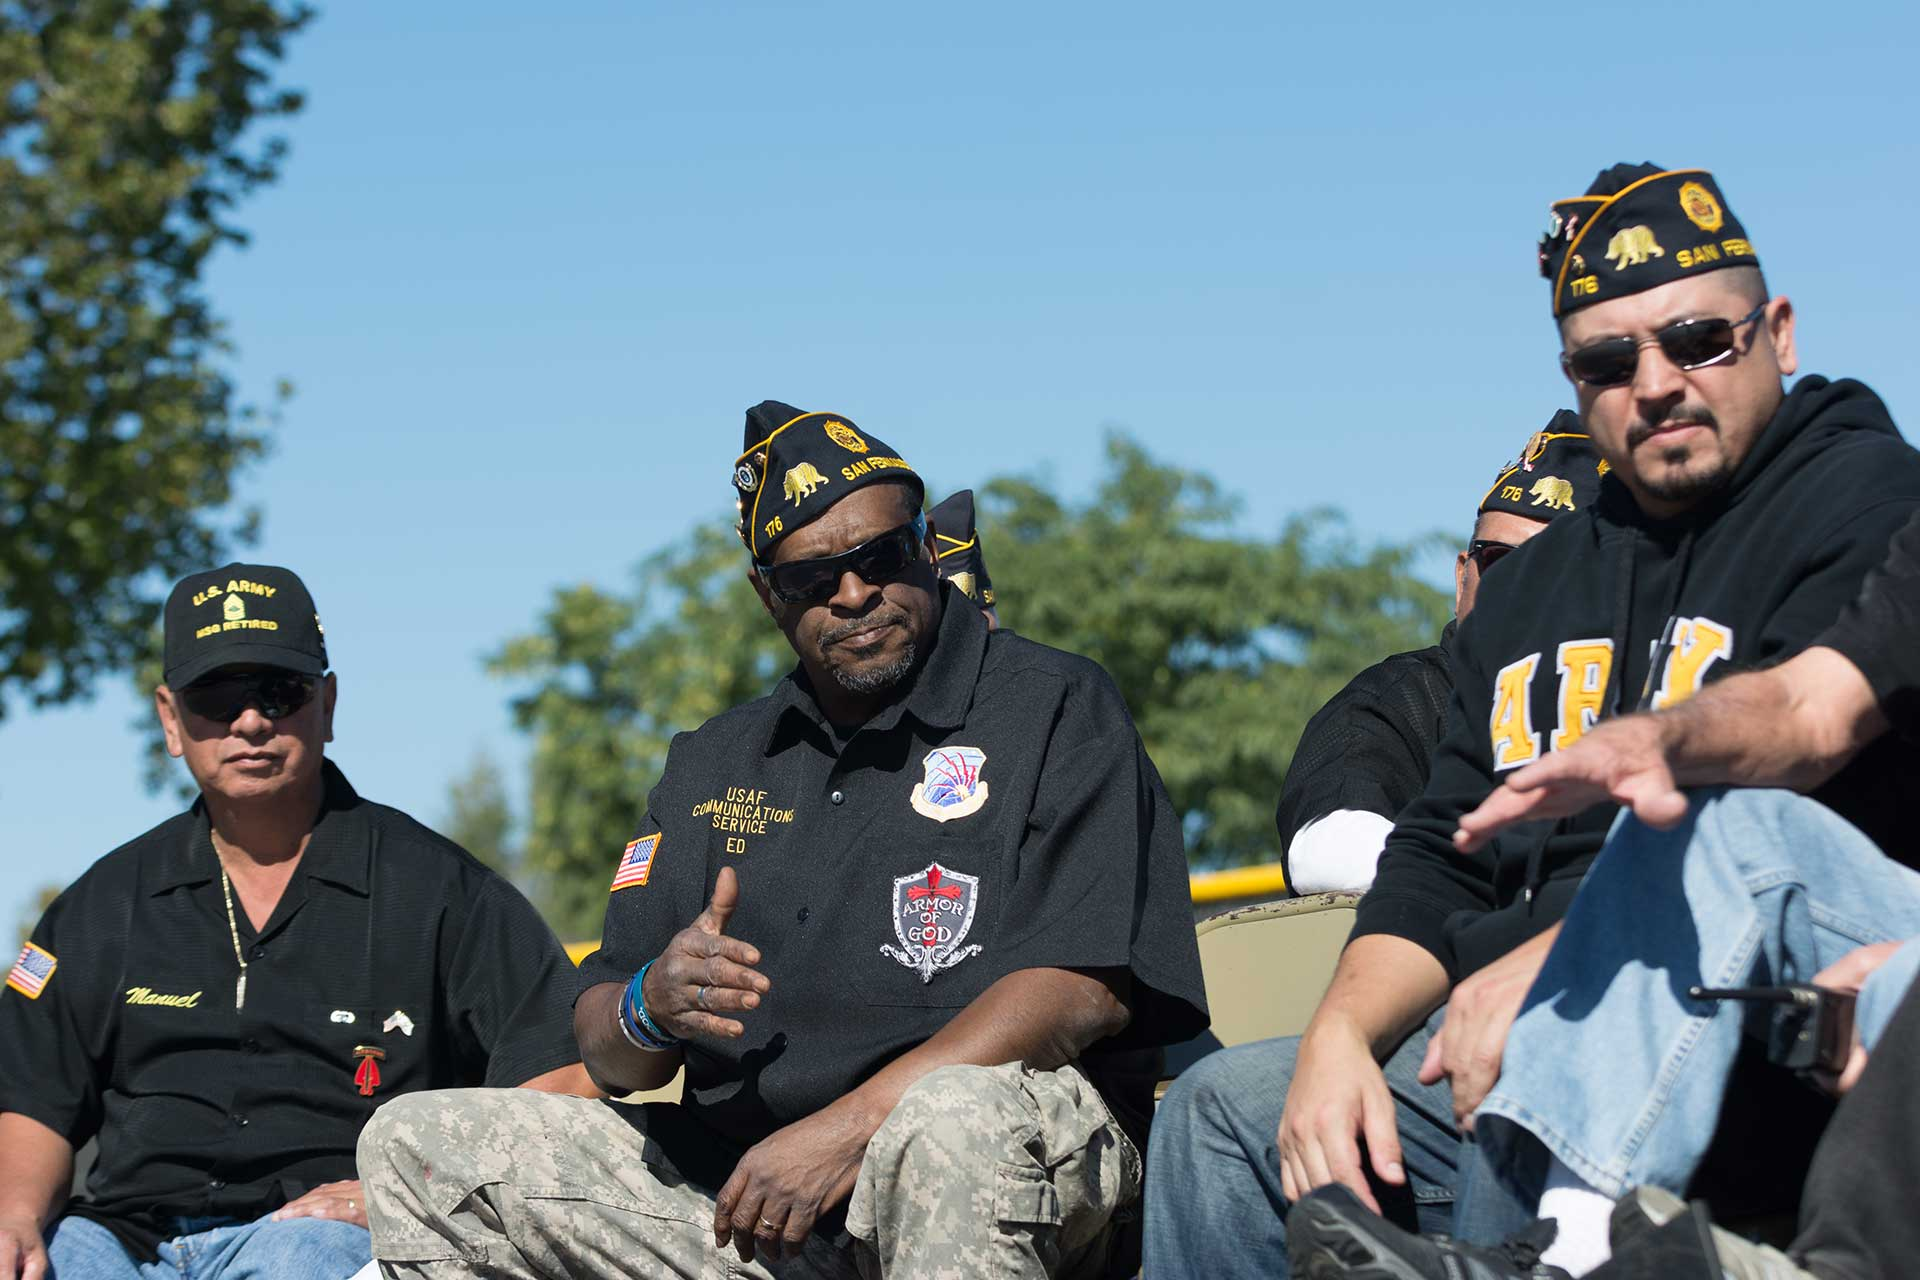 Image of veterans sitting together